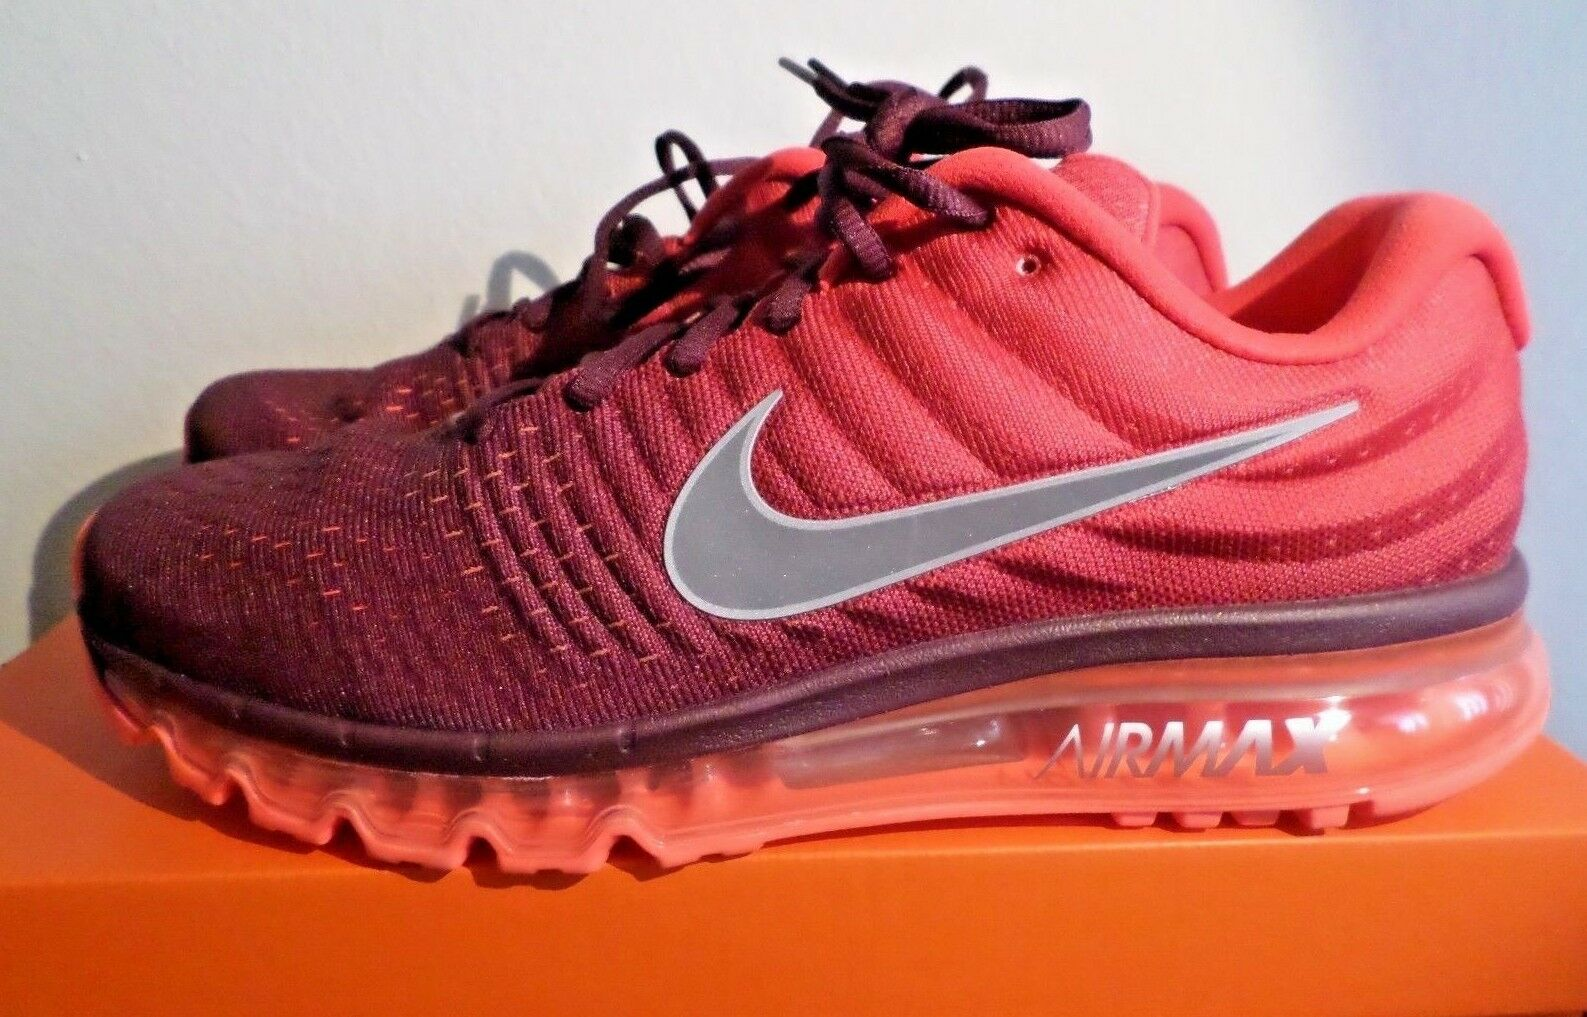 NIKE AIR MAX 2017 Men's Running shoes 849559 601 Maroon  Gym Red 13 14 New  190